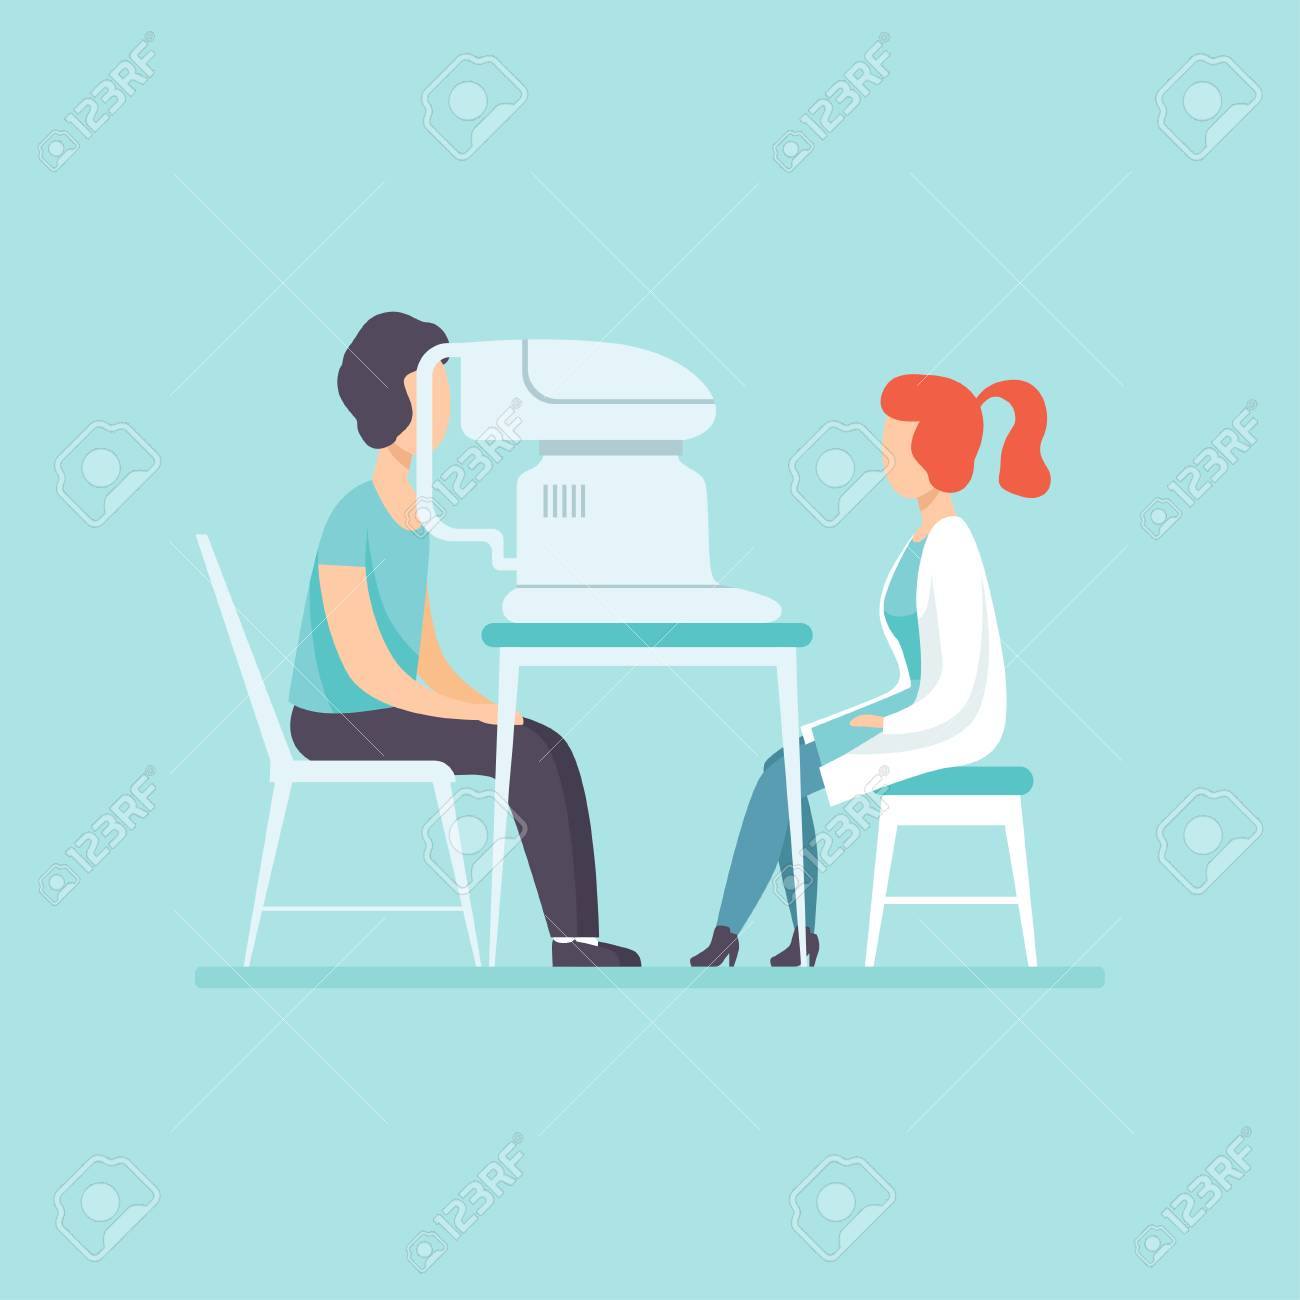 Ophthalmologist doctor examining patient eyesight with professional ophthalmological equipment, medical treatment and healthcare concept vector Illustration in cartoon style - 105425138